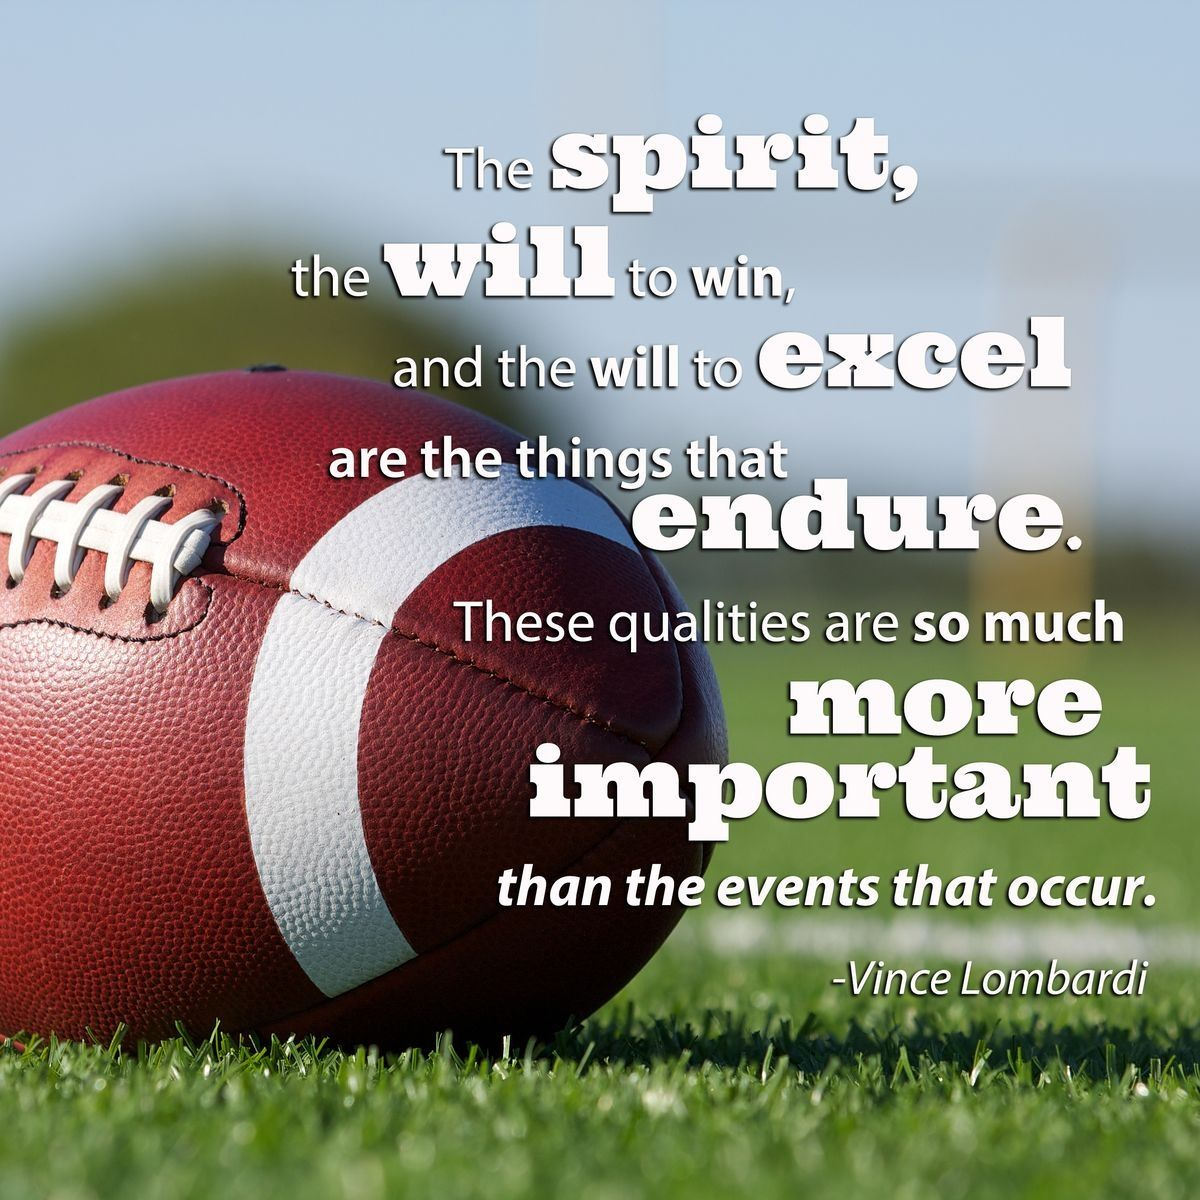 Football Quote Football Quotes Motivational Football Quotes Soccer Quotes